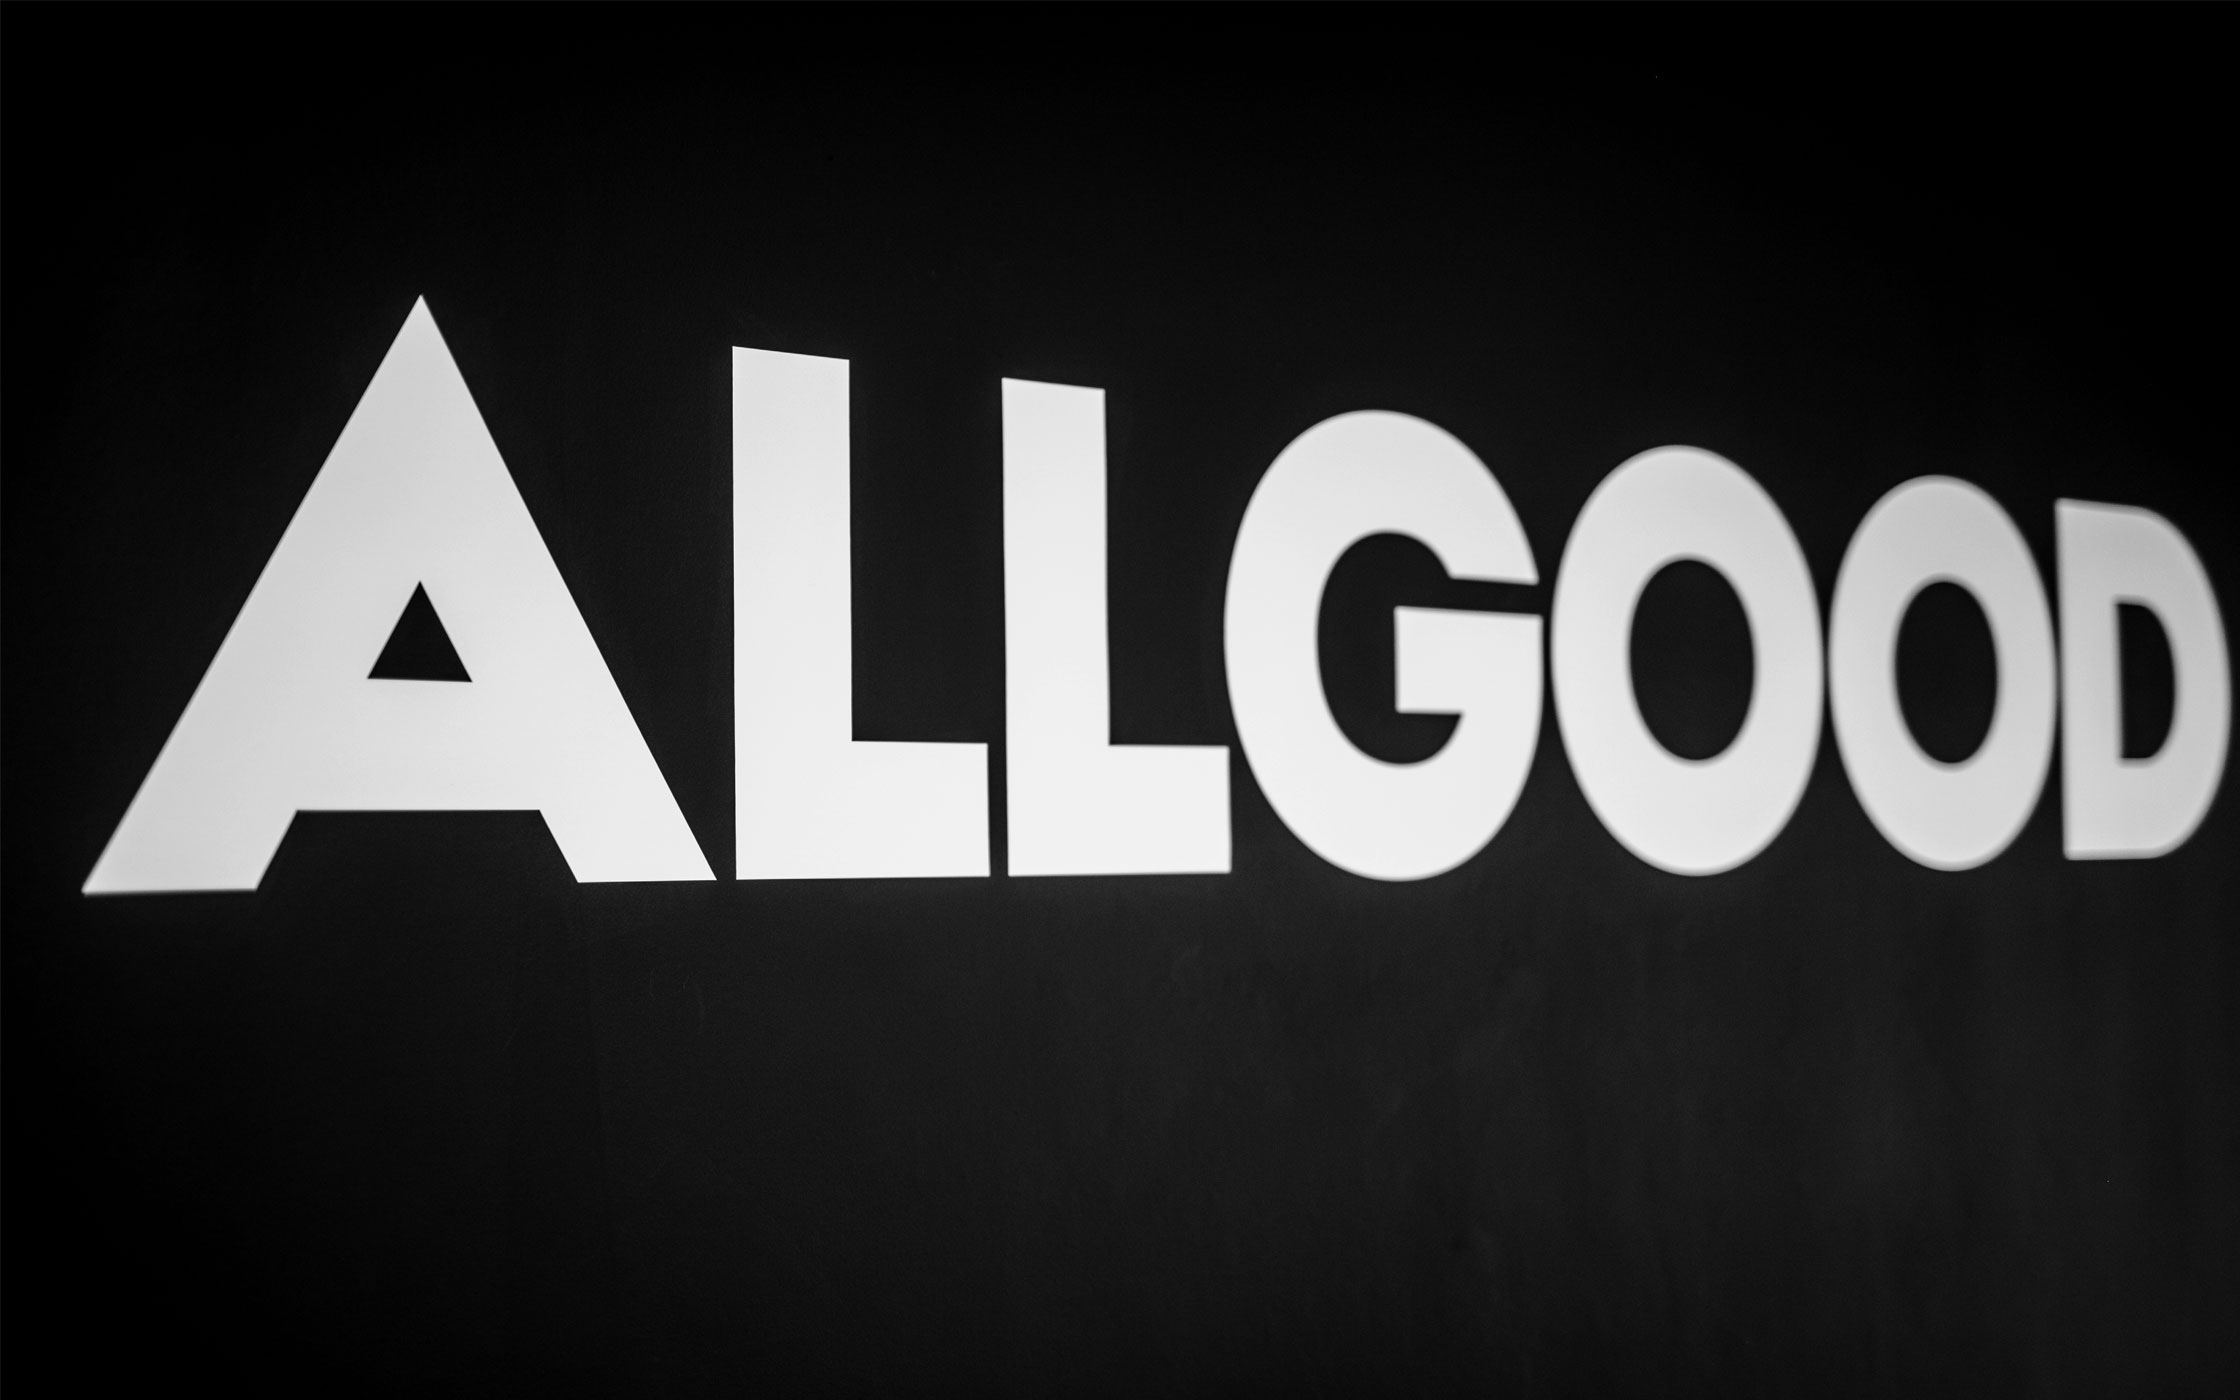 ALLGOOD has rebranded